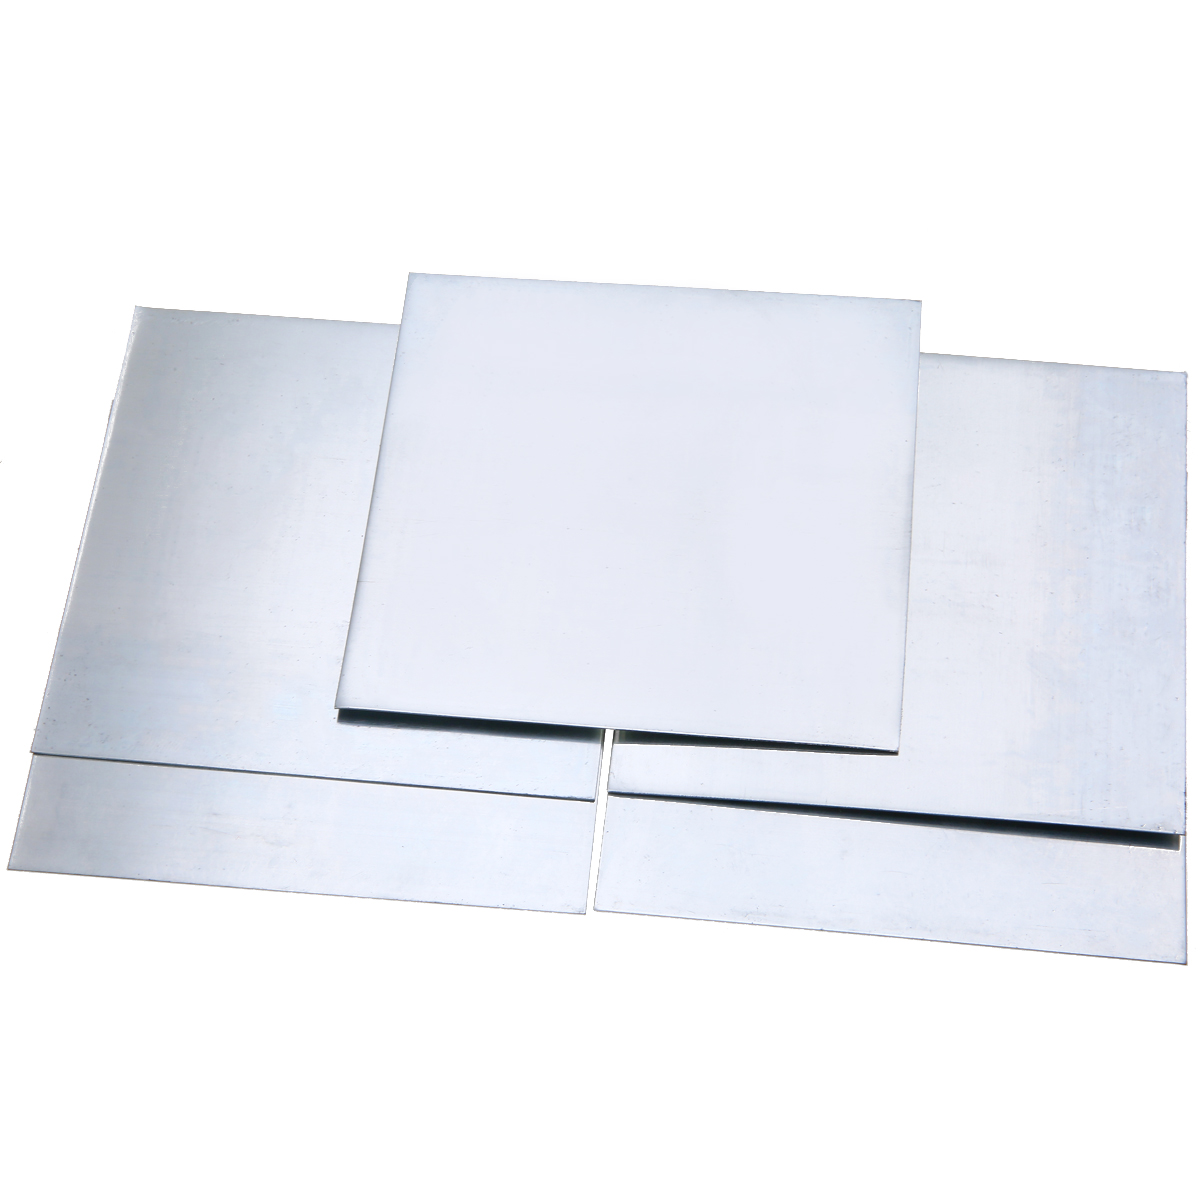 5pcs High-purity Pure Zinc Zn Sheet Plate 0.5mm Thickness Metal Foil 100mmx100mm For Power Tools